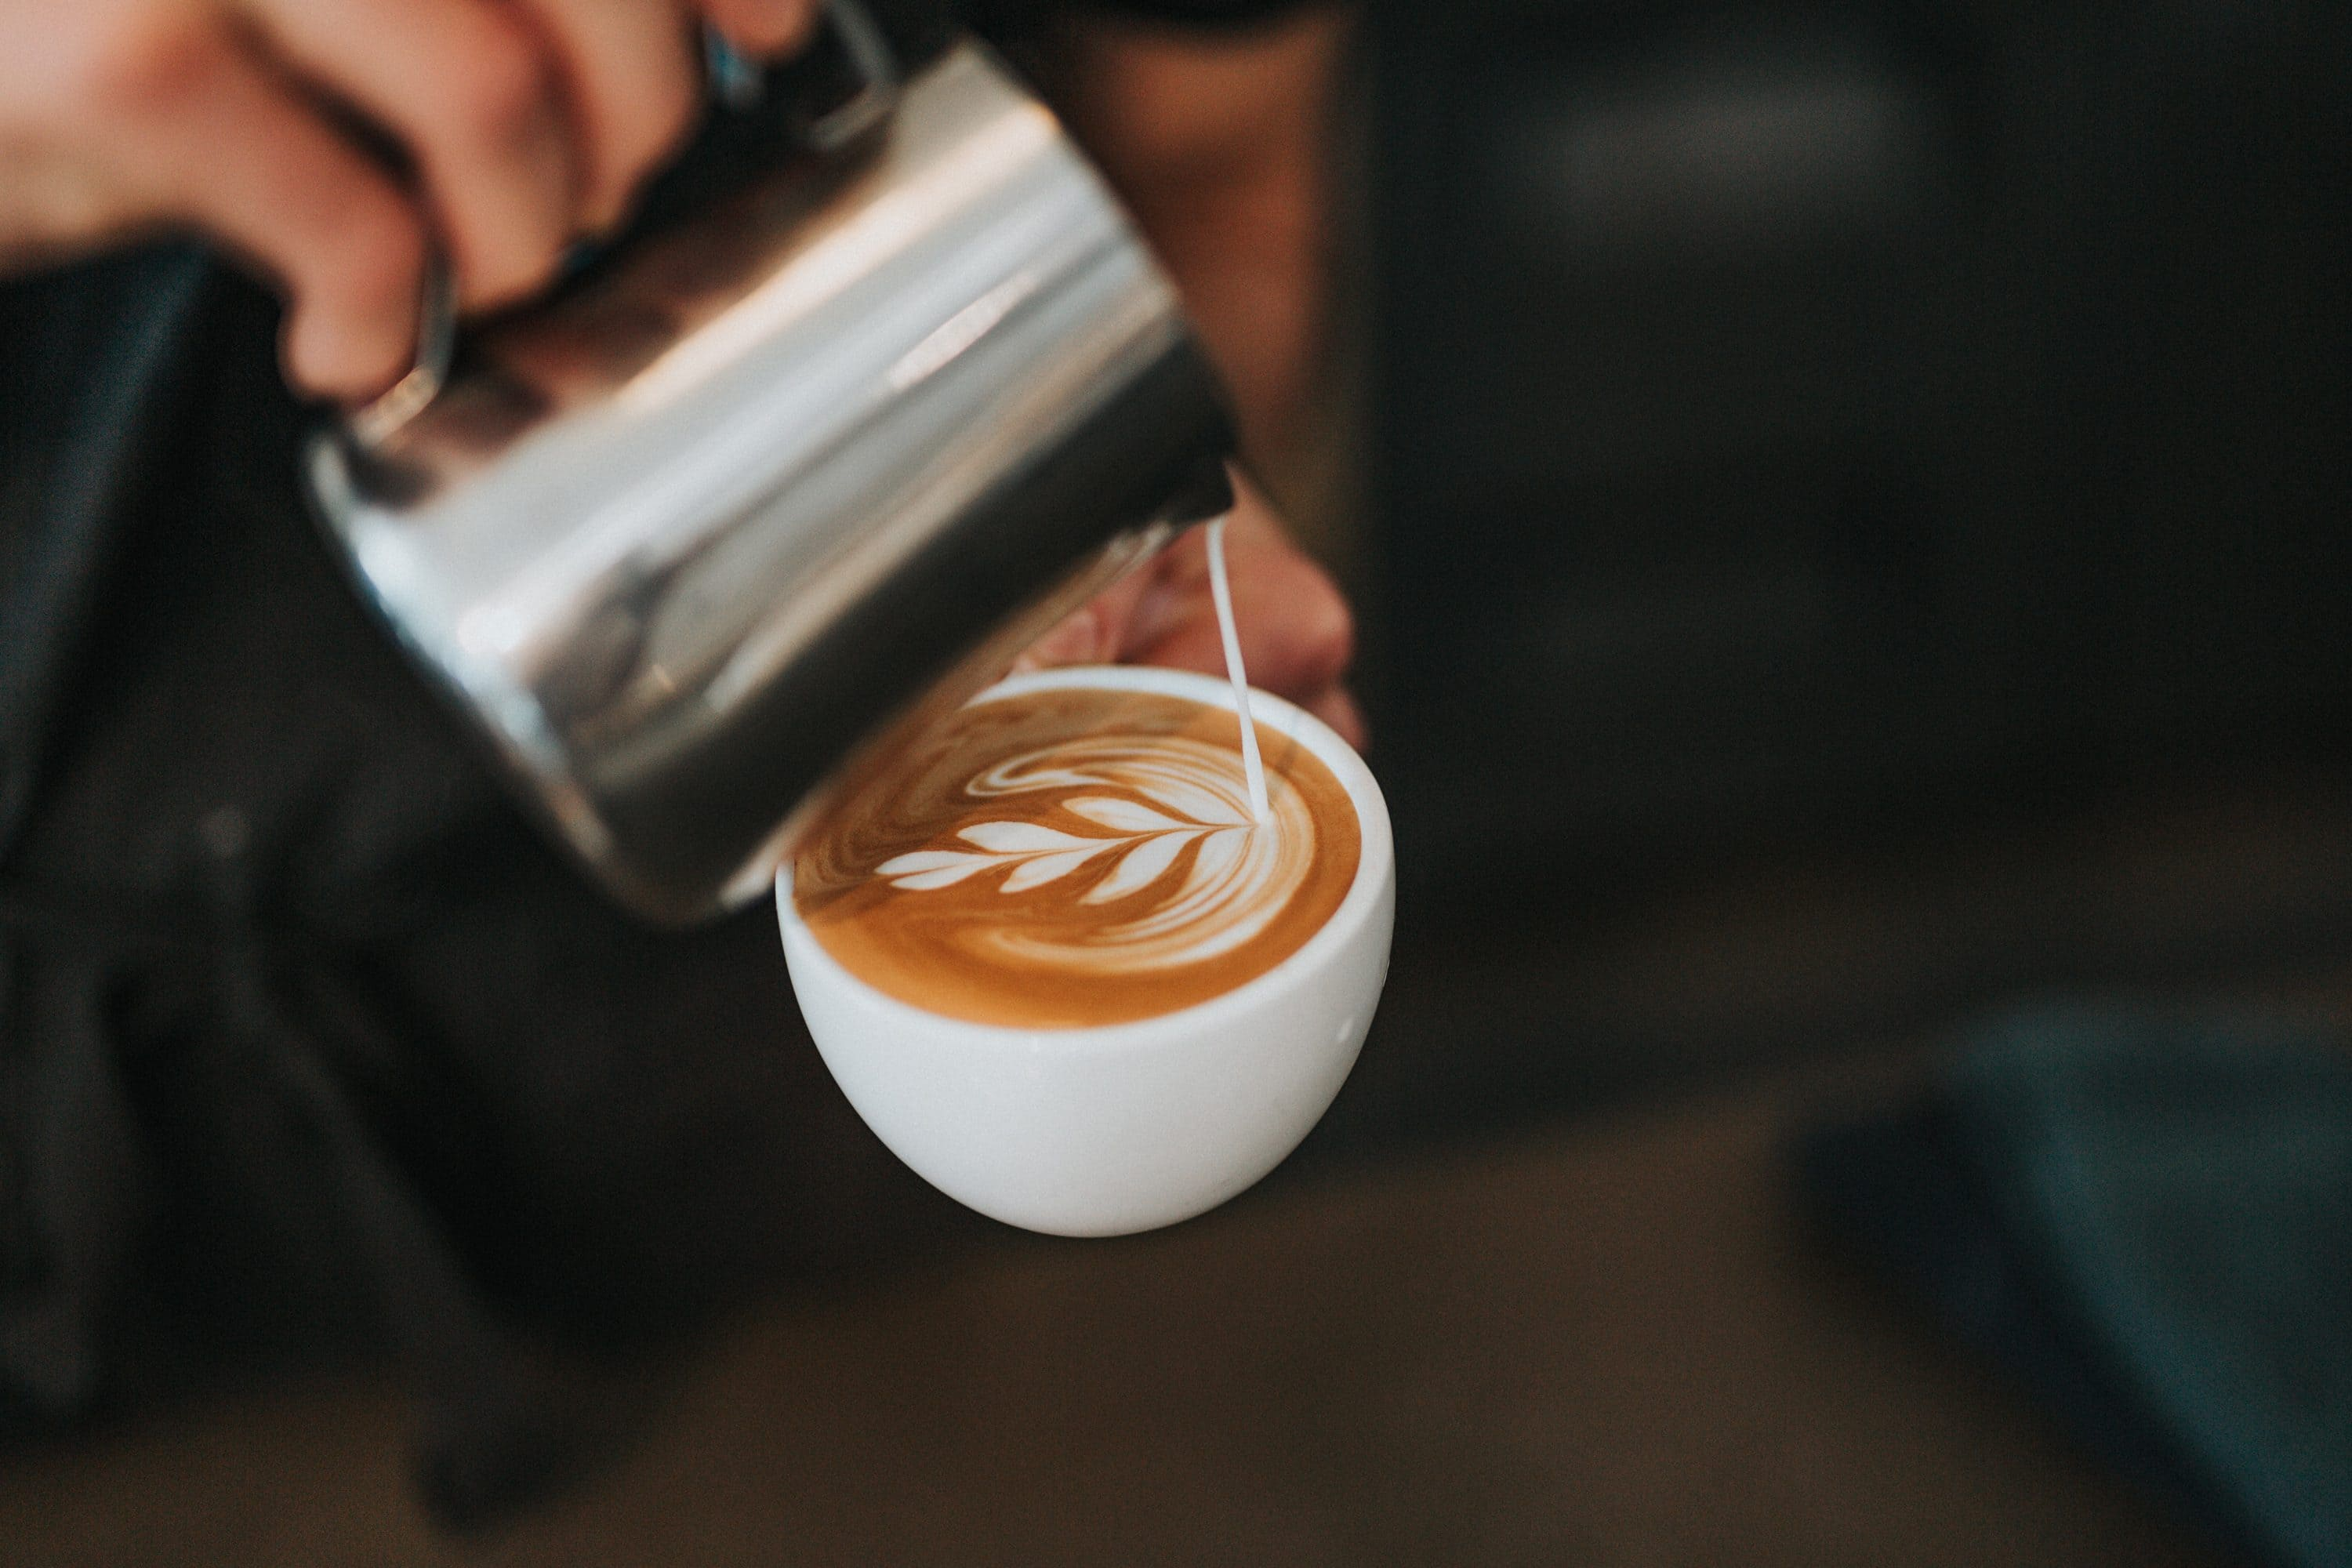 Milk being poured into a coffee